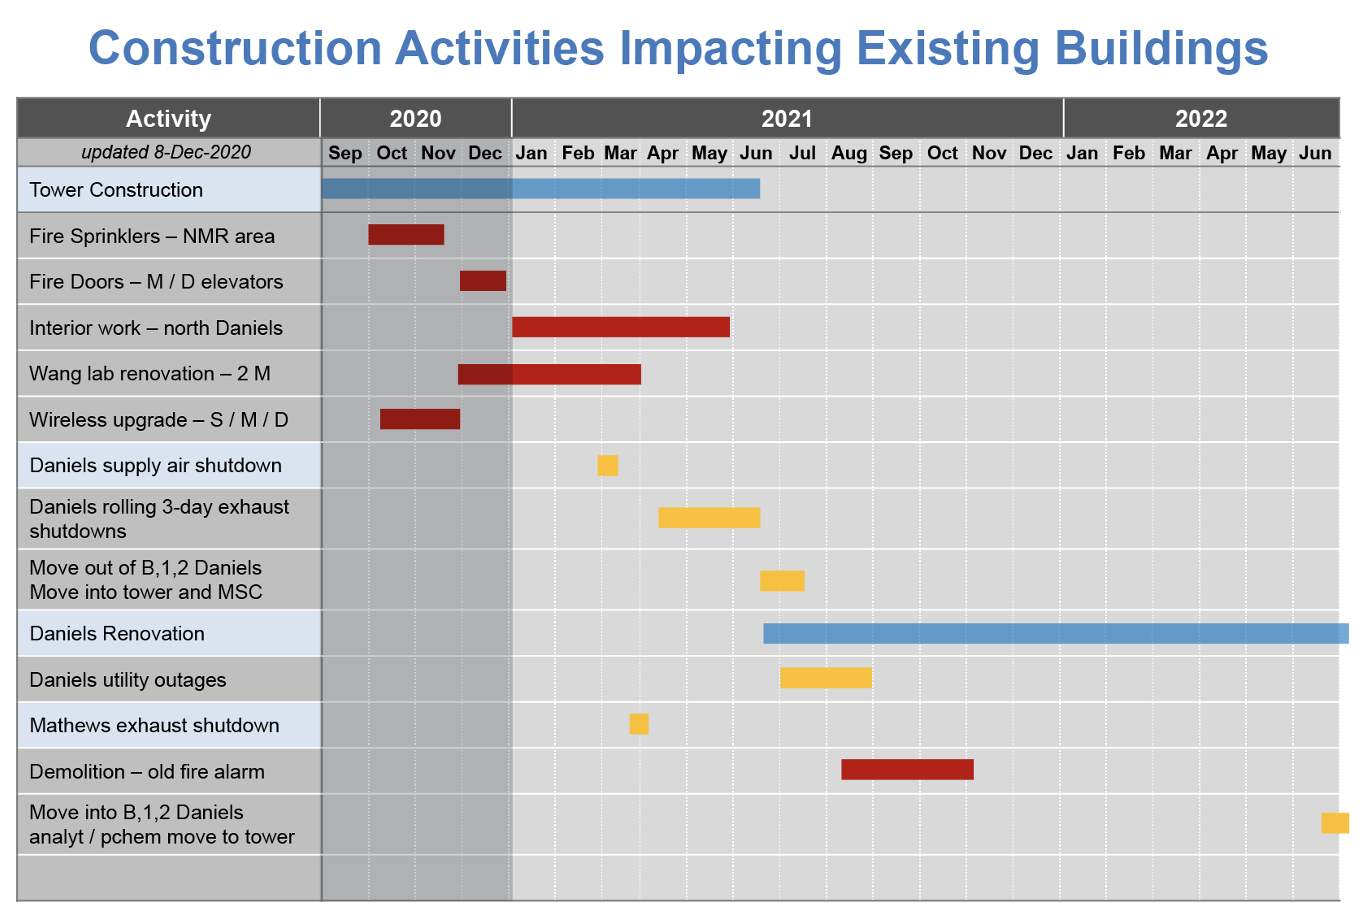 Construction activities impacting existing buildings calendar 01/04/2021